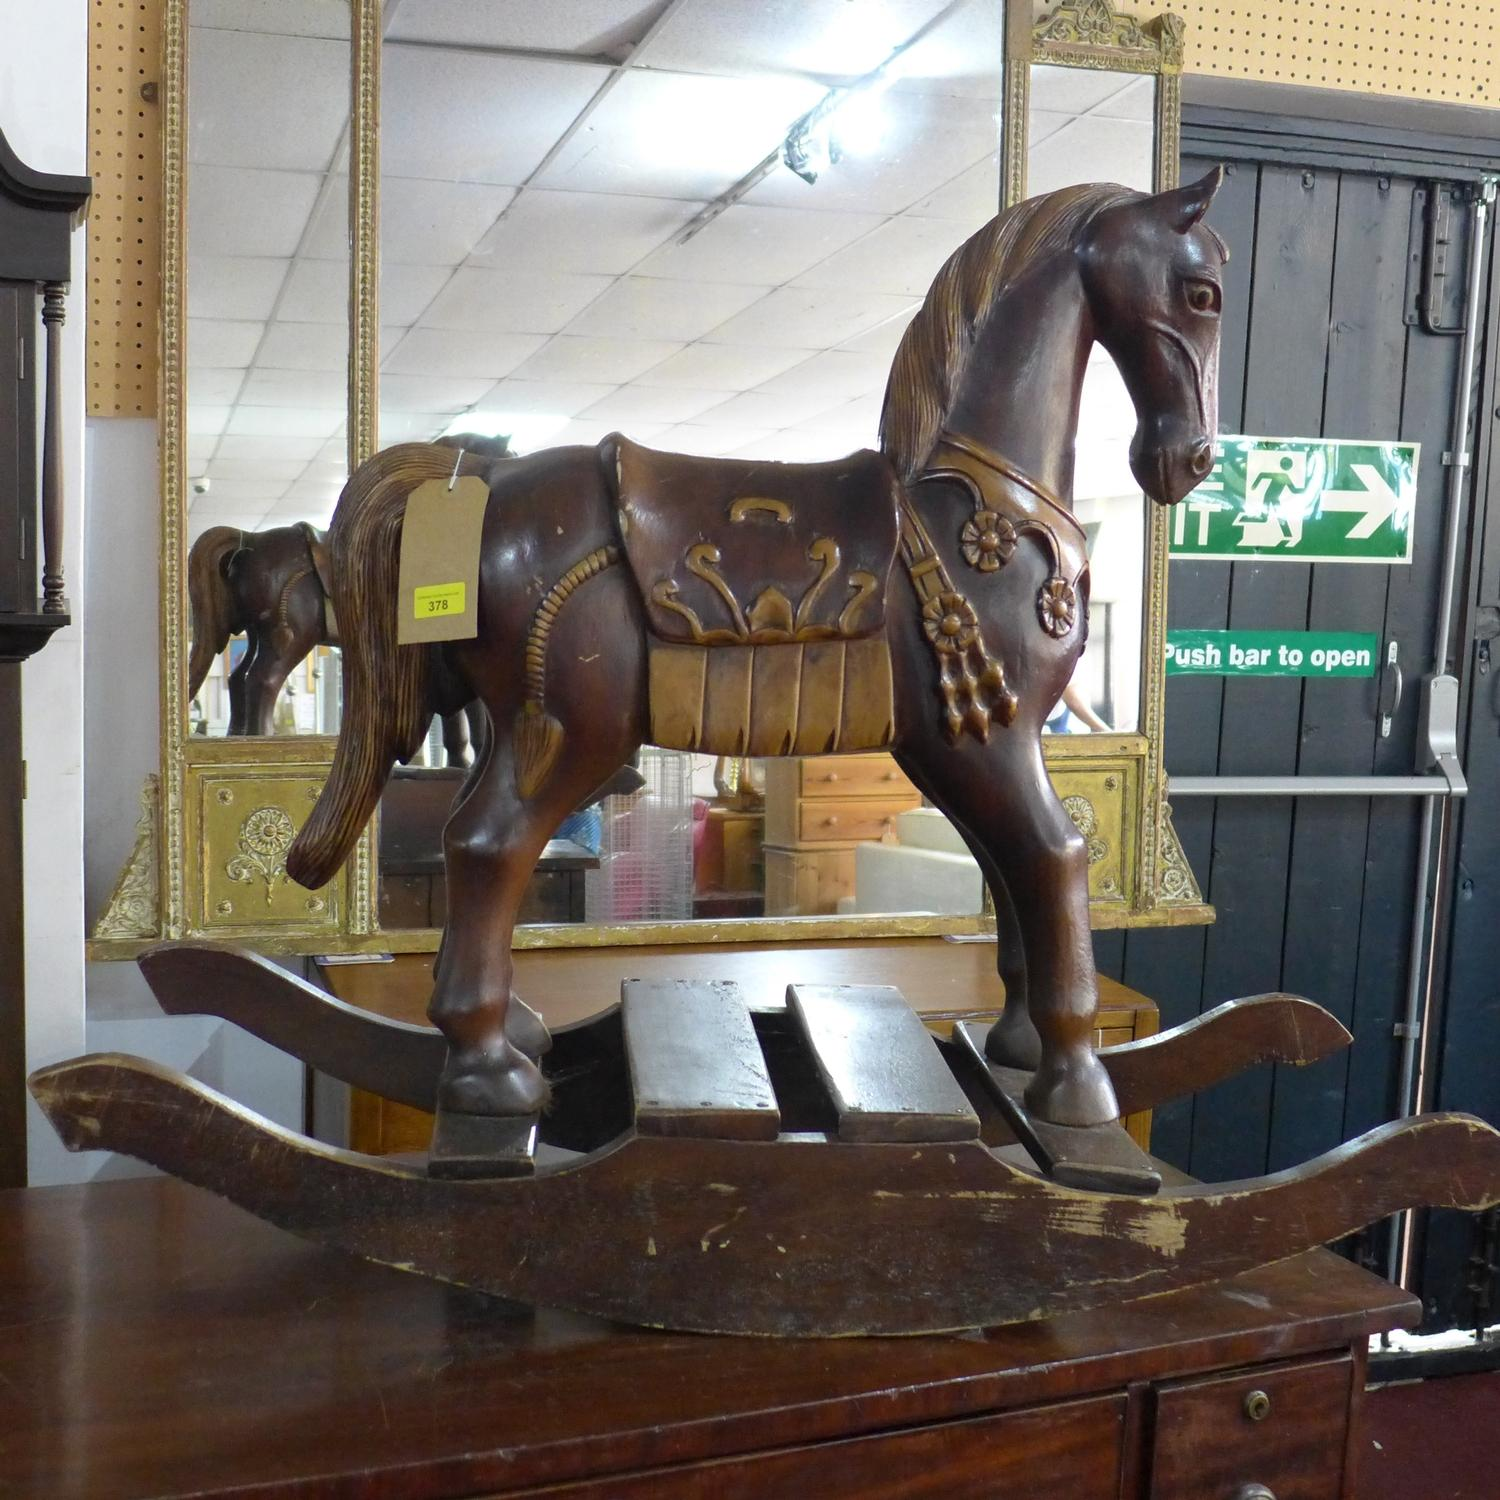 Lot 378 - A carved wooden rocking horse, H.69 W.100 D.36cm